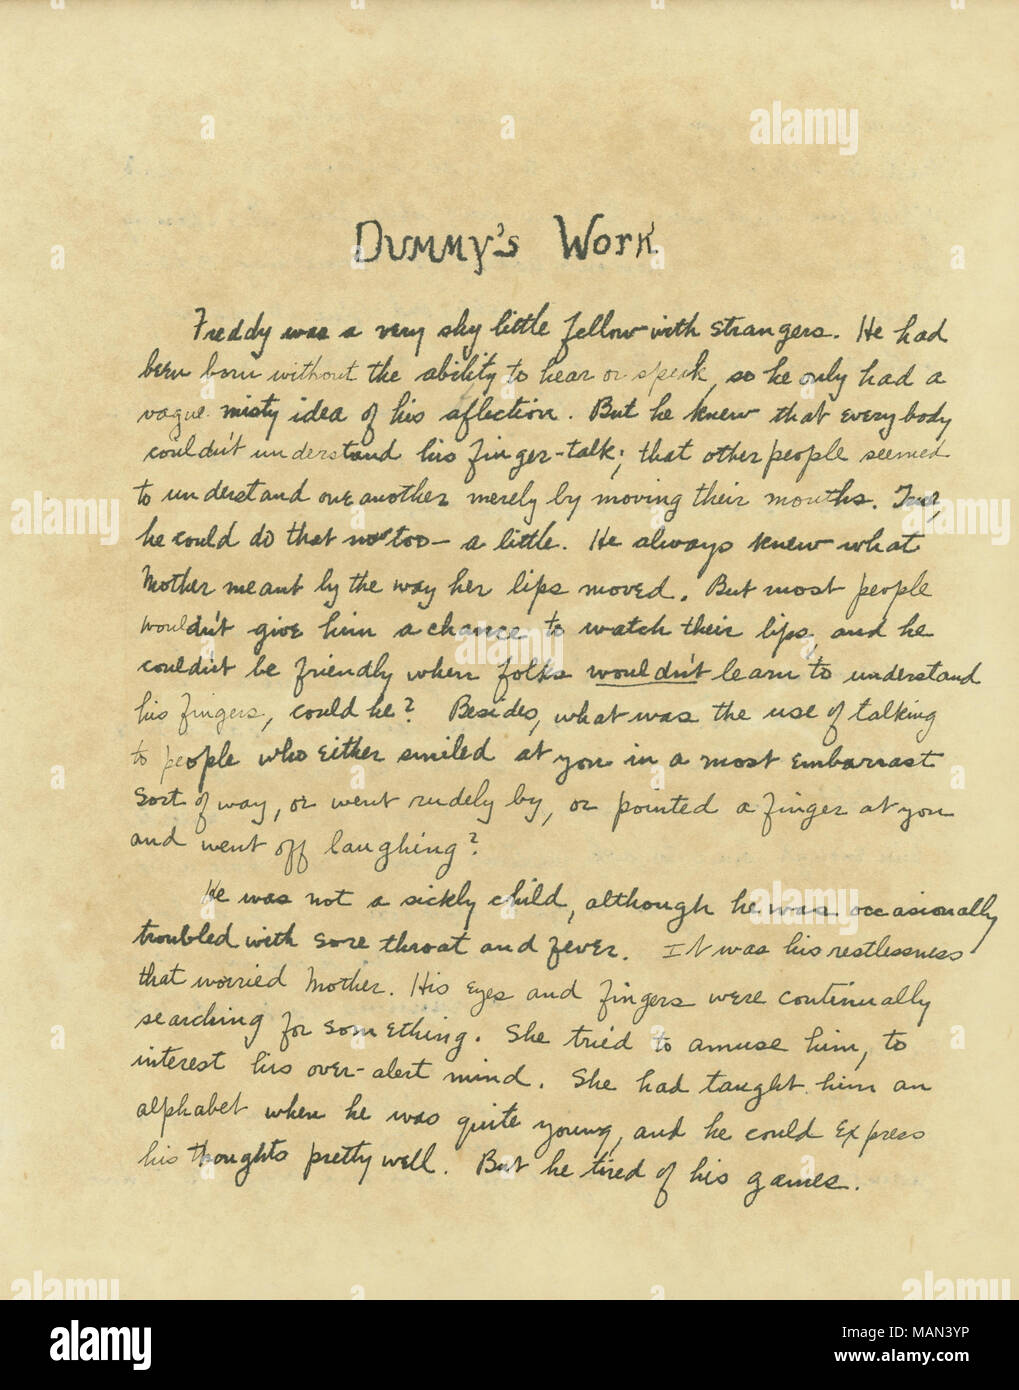 Dummy's Work,' short story by Edna Wahlert, page one  Title:The